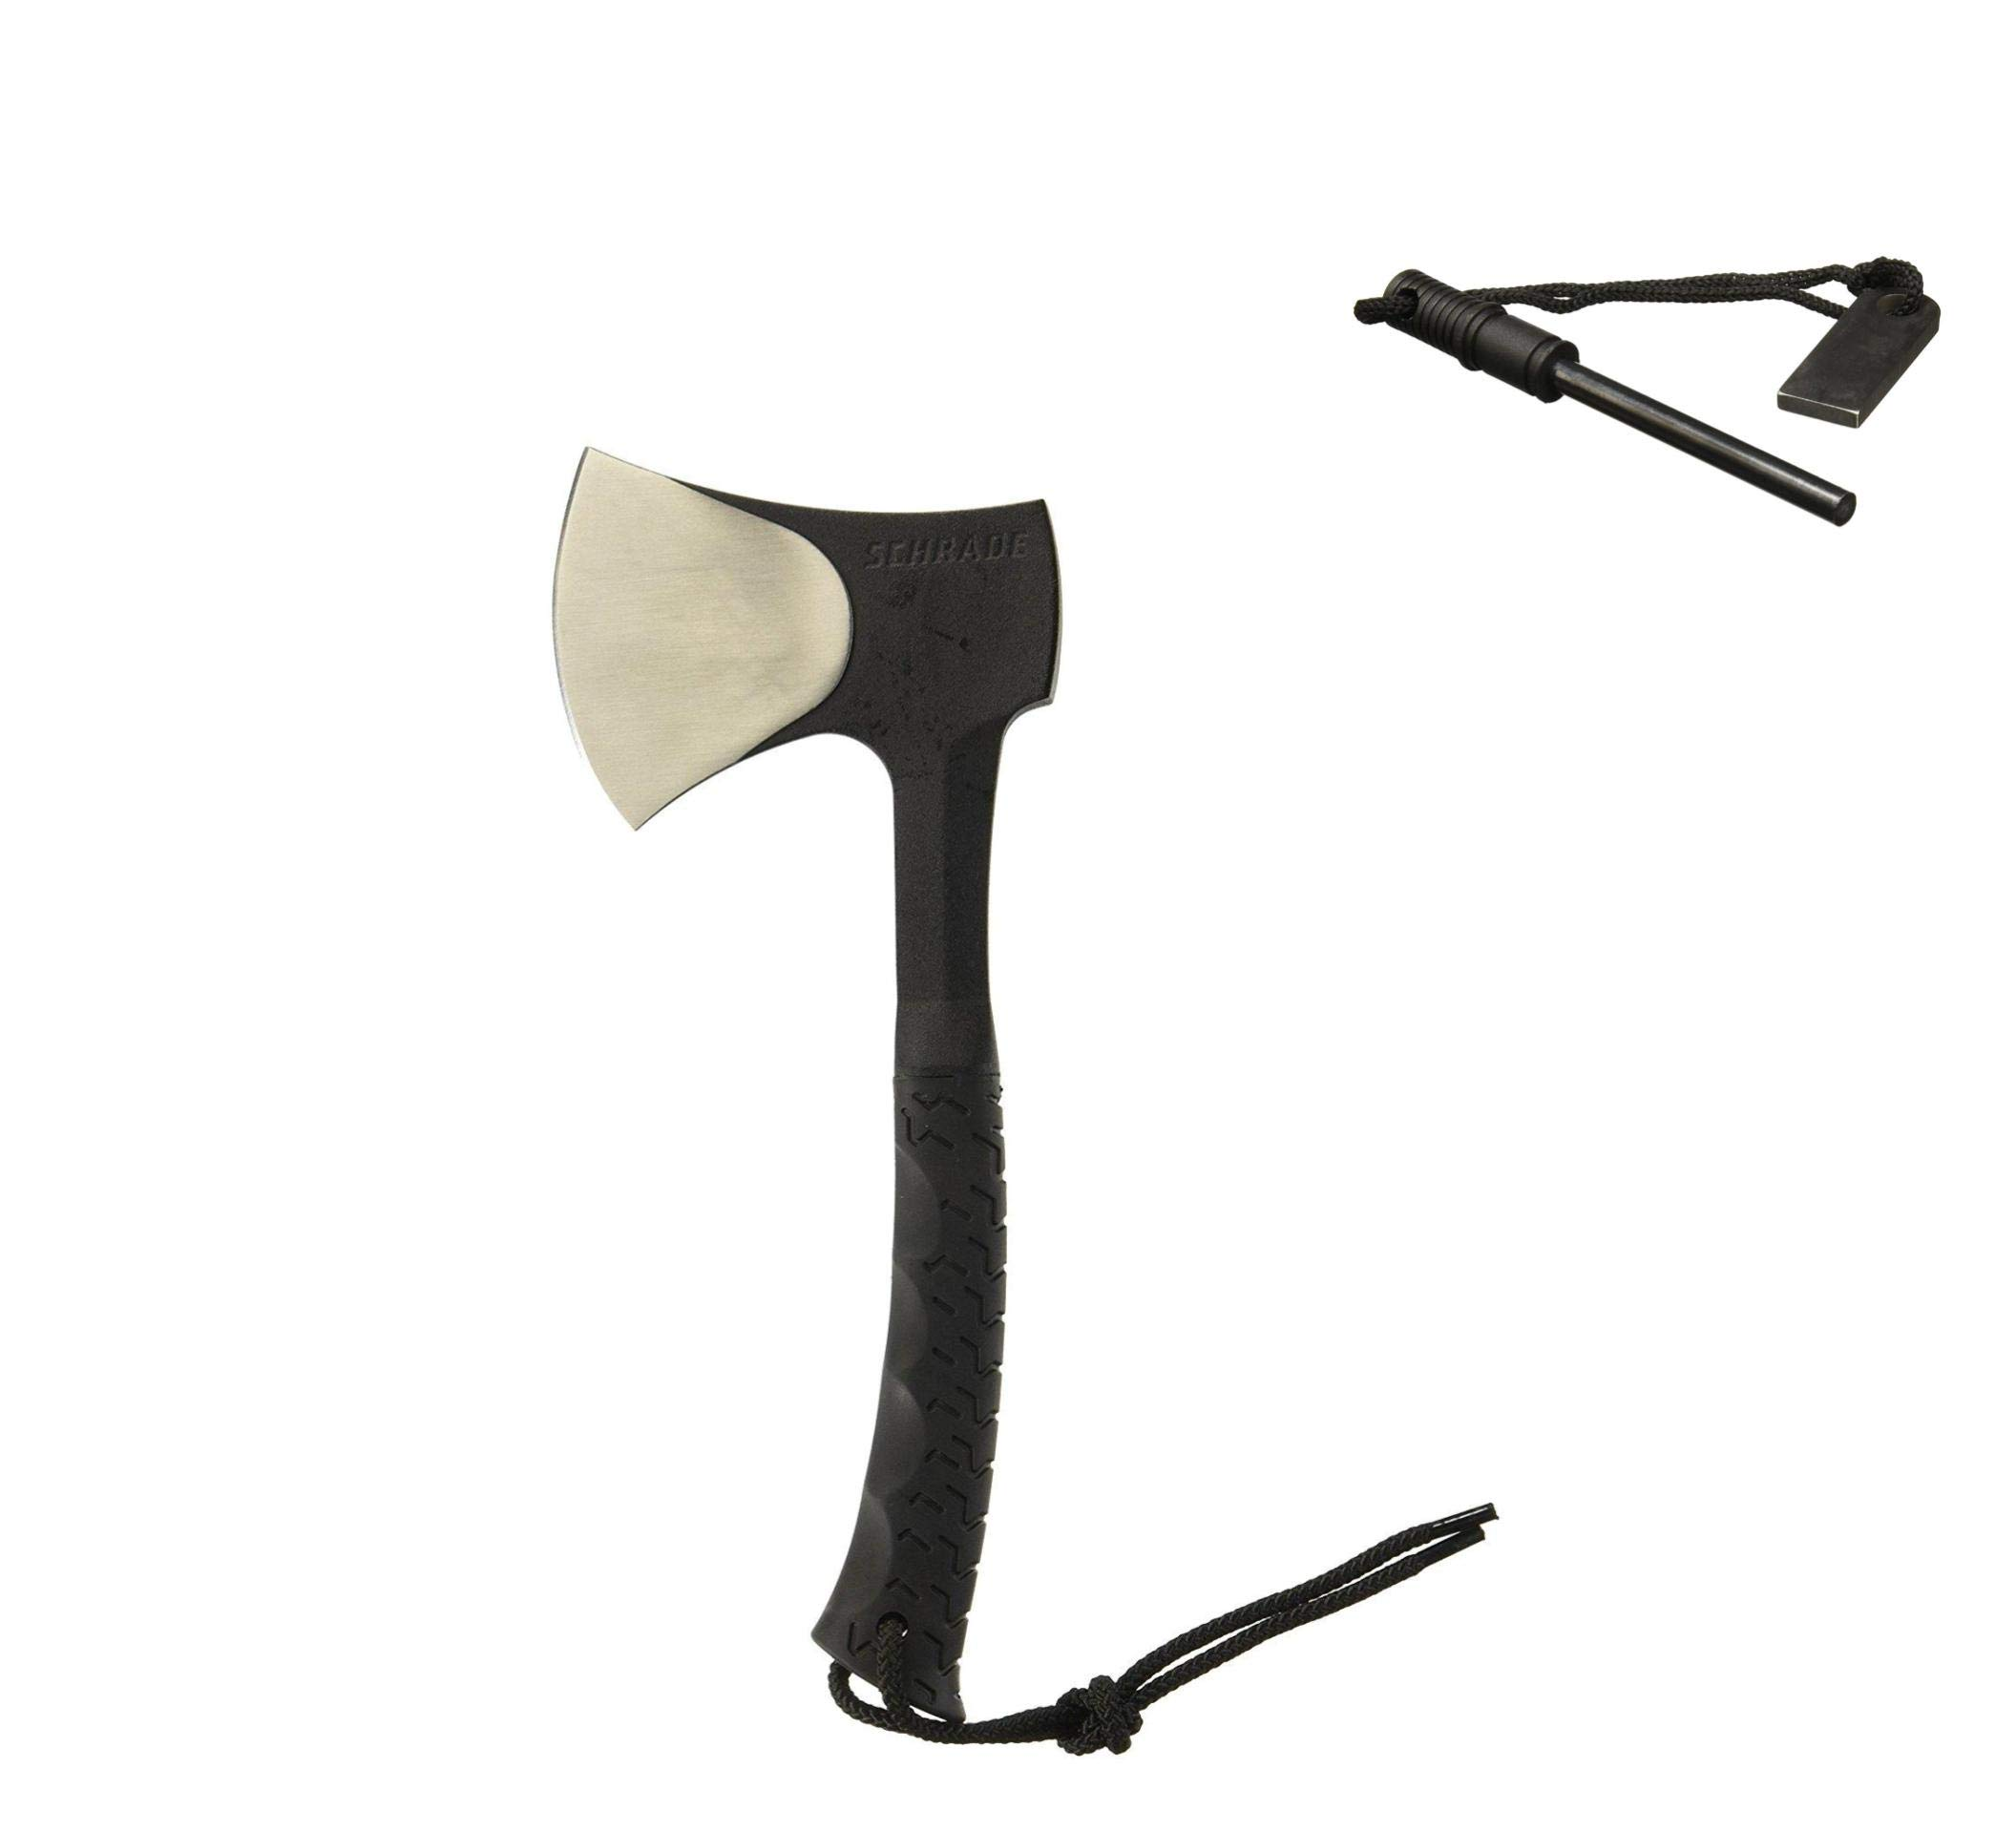 SCAXE10 11.1in Full Tang Hatchet with 3.6in Stainless Steel Blade and TPR Handle for Outdoor Survival Camping and Everyday Carry (Hatchet with Fire Striker Included)